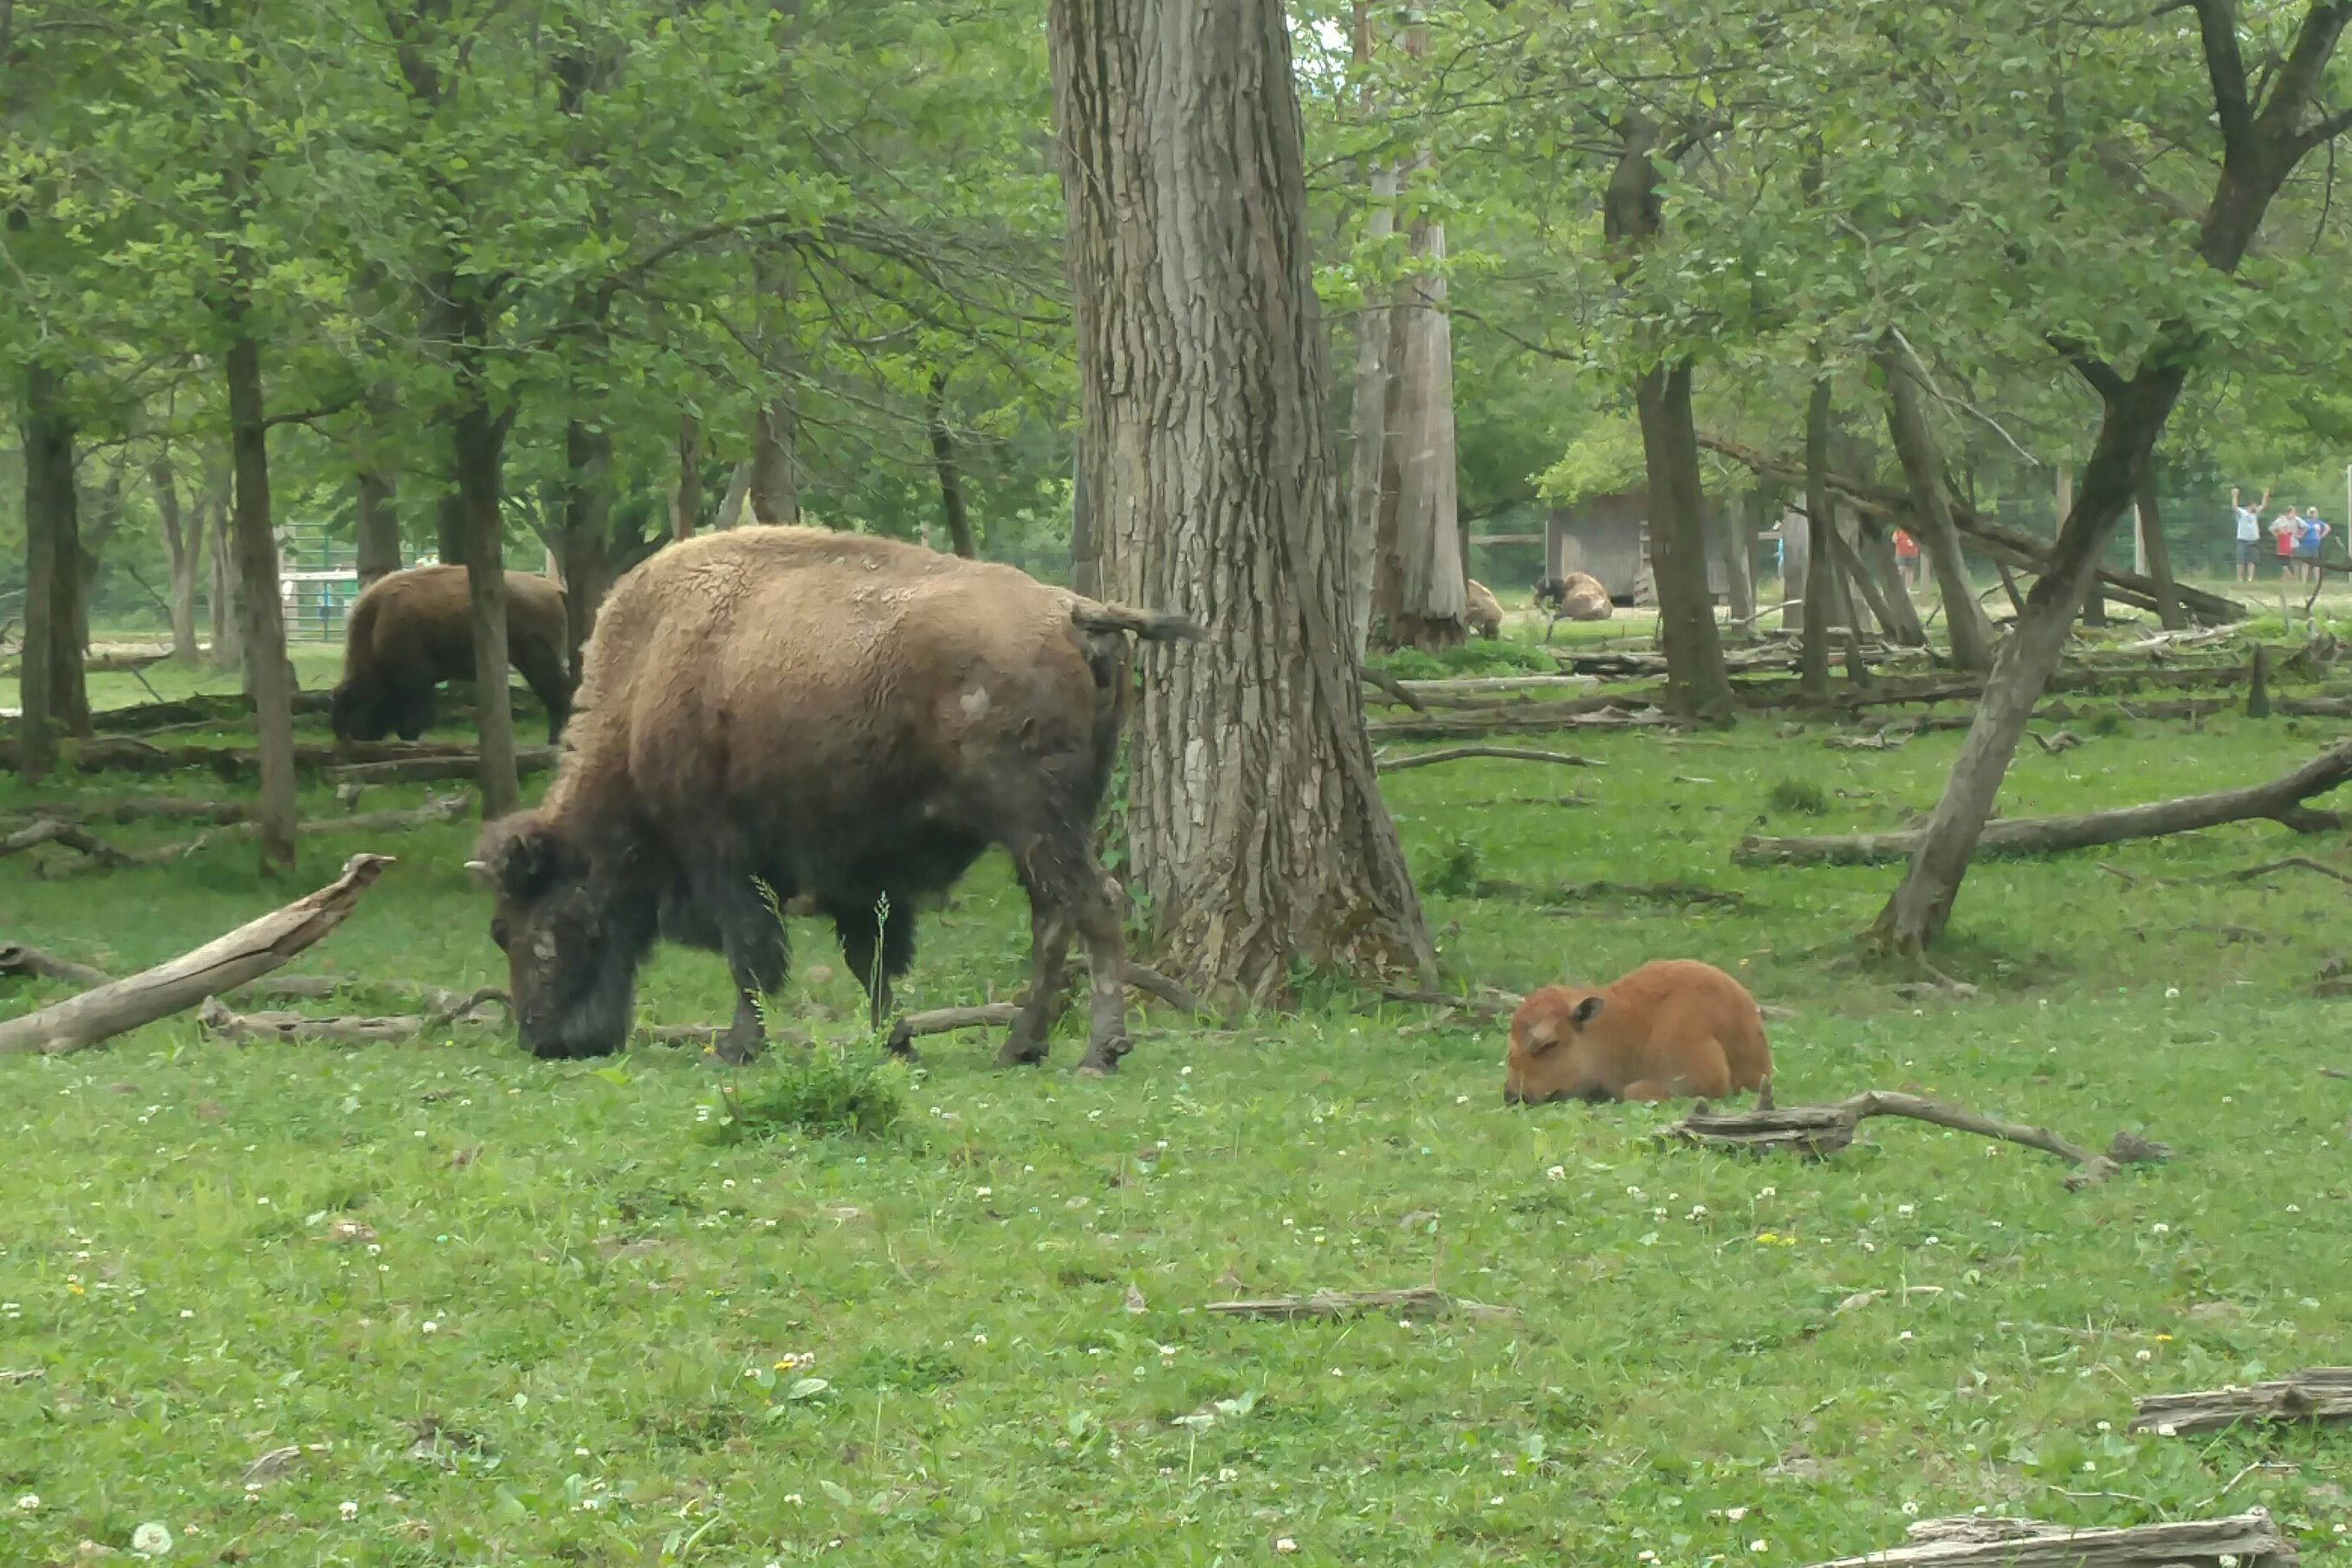 The park naturalists allowed our group to see the bison up close at the feeding station.